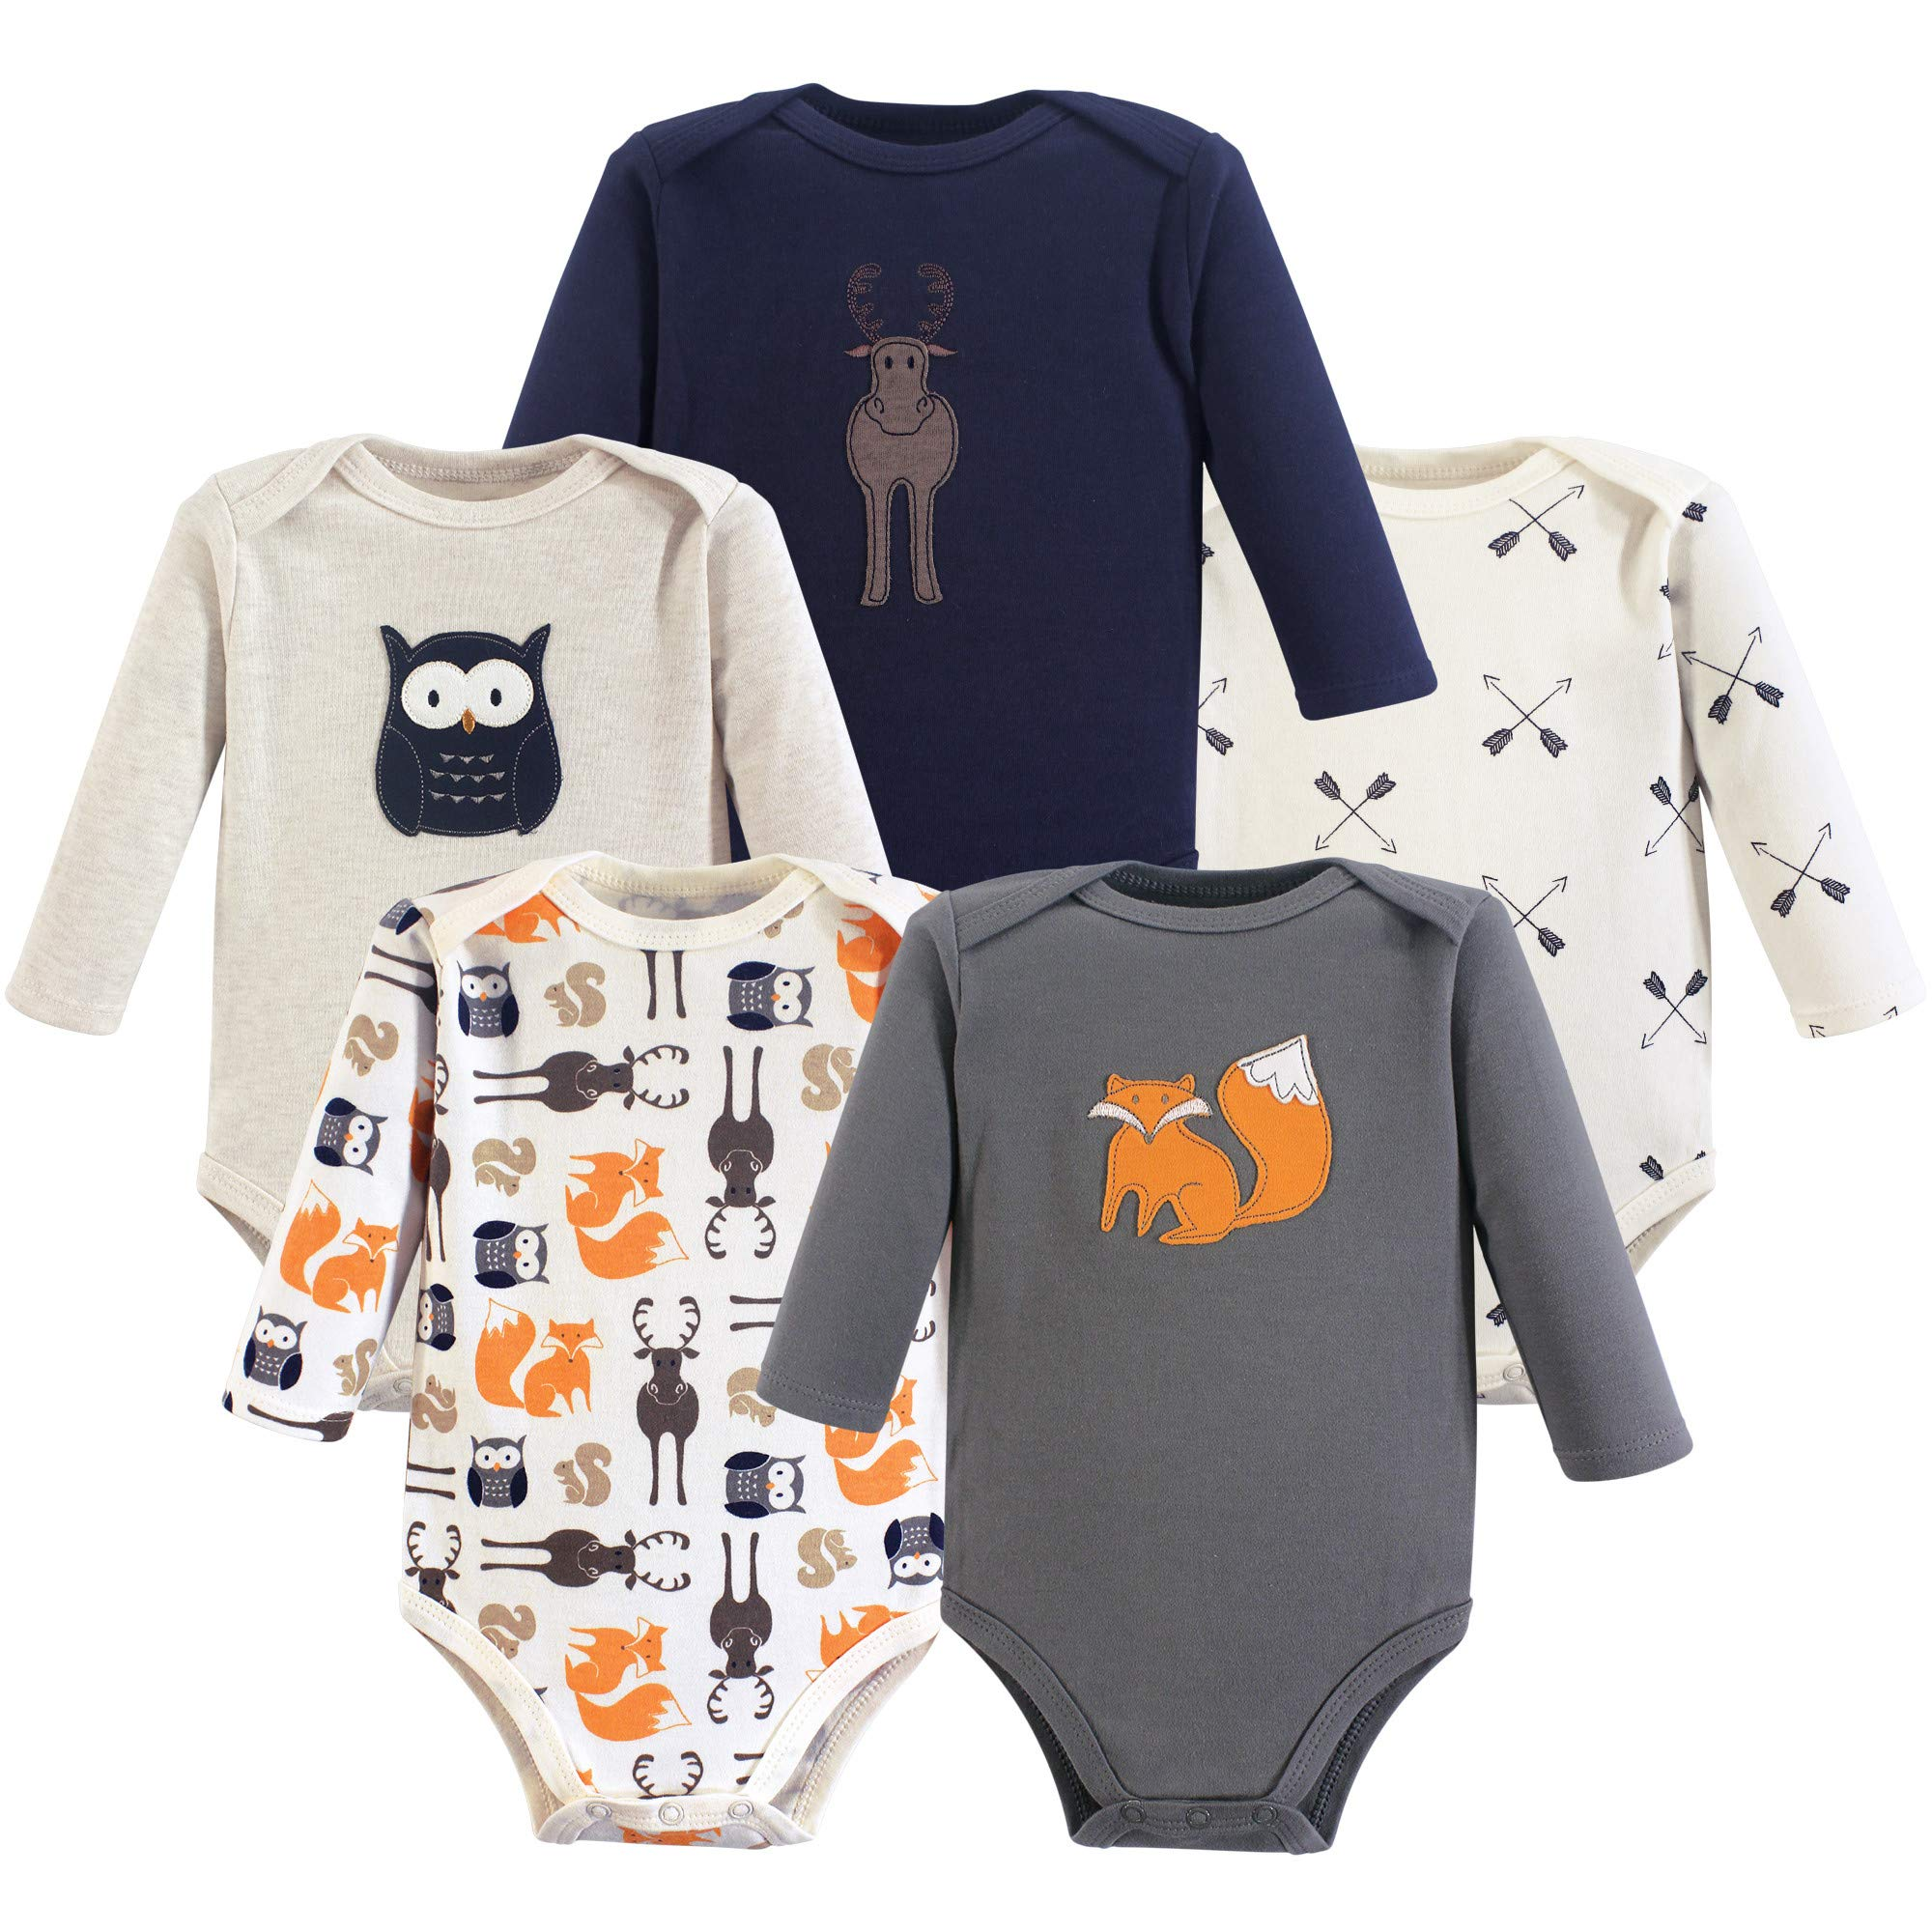 Hudson Baby Long Sleeve Bodysuits, 5 Pack, Forest, 0-3 Months